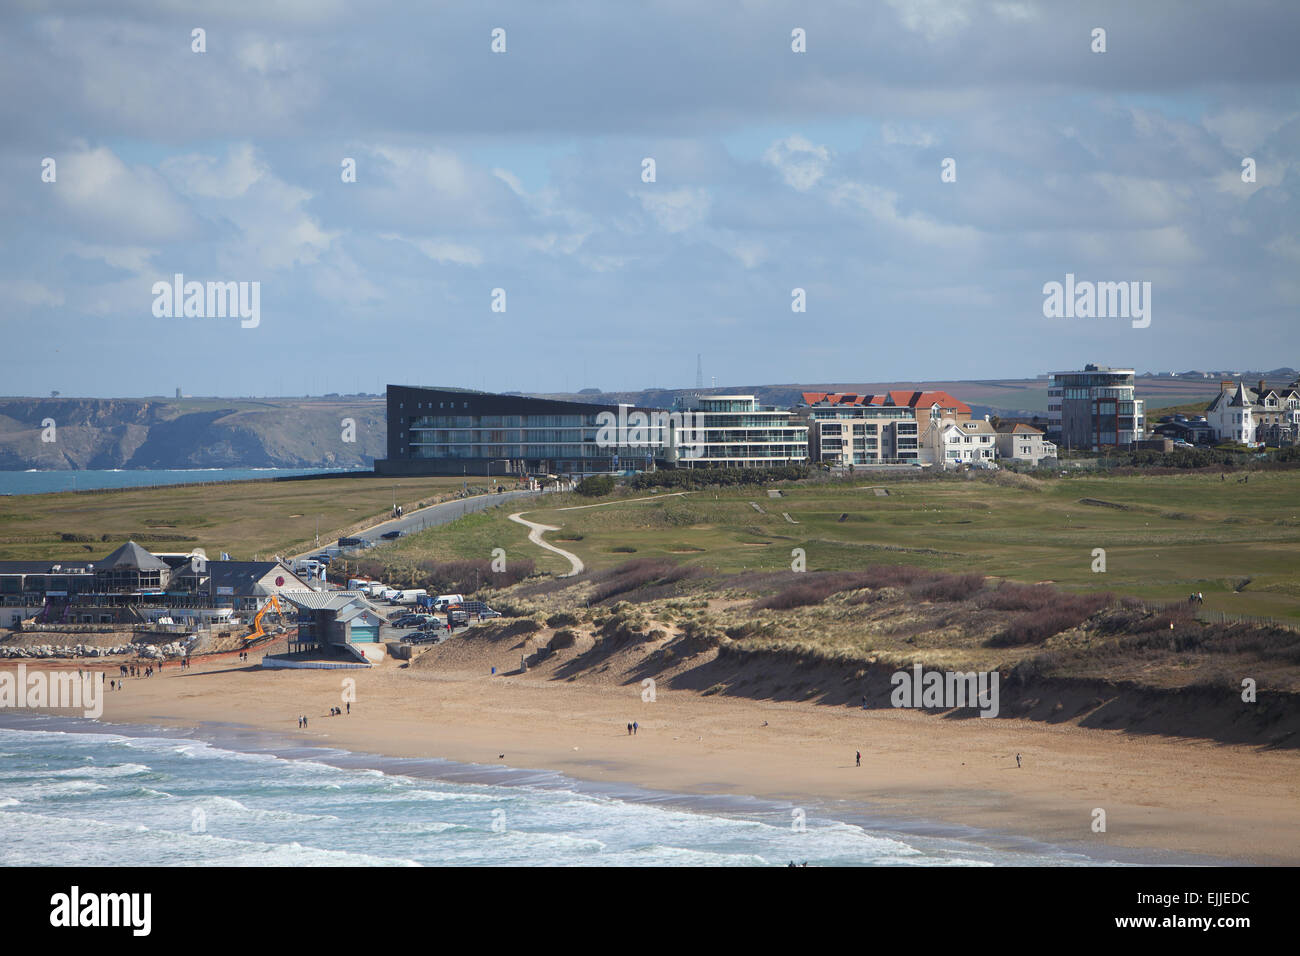 Hotels in Newquay, Cornwall, UK on March 25th, 2015. - Stock Image